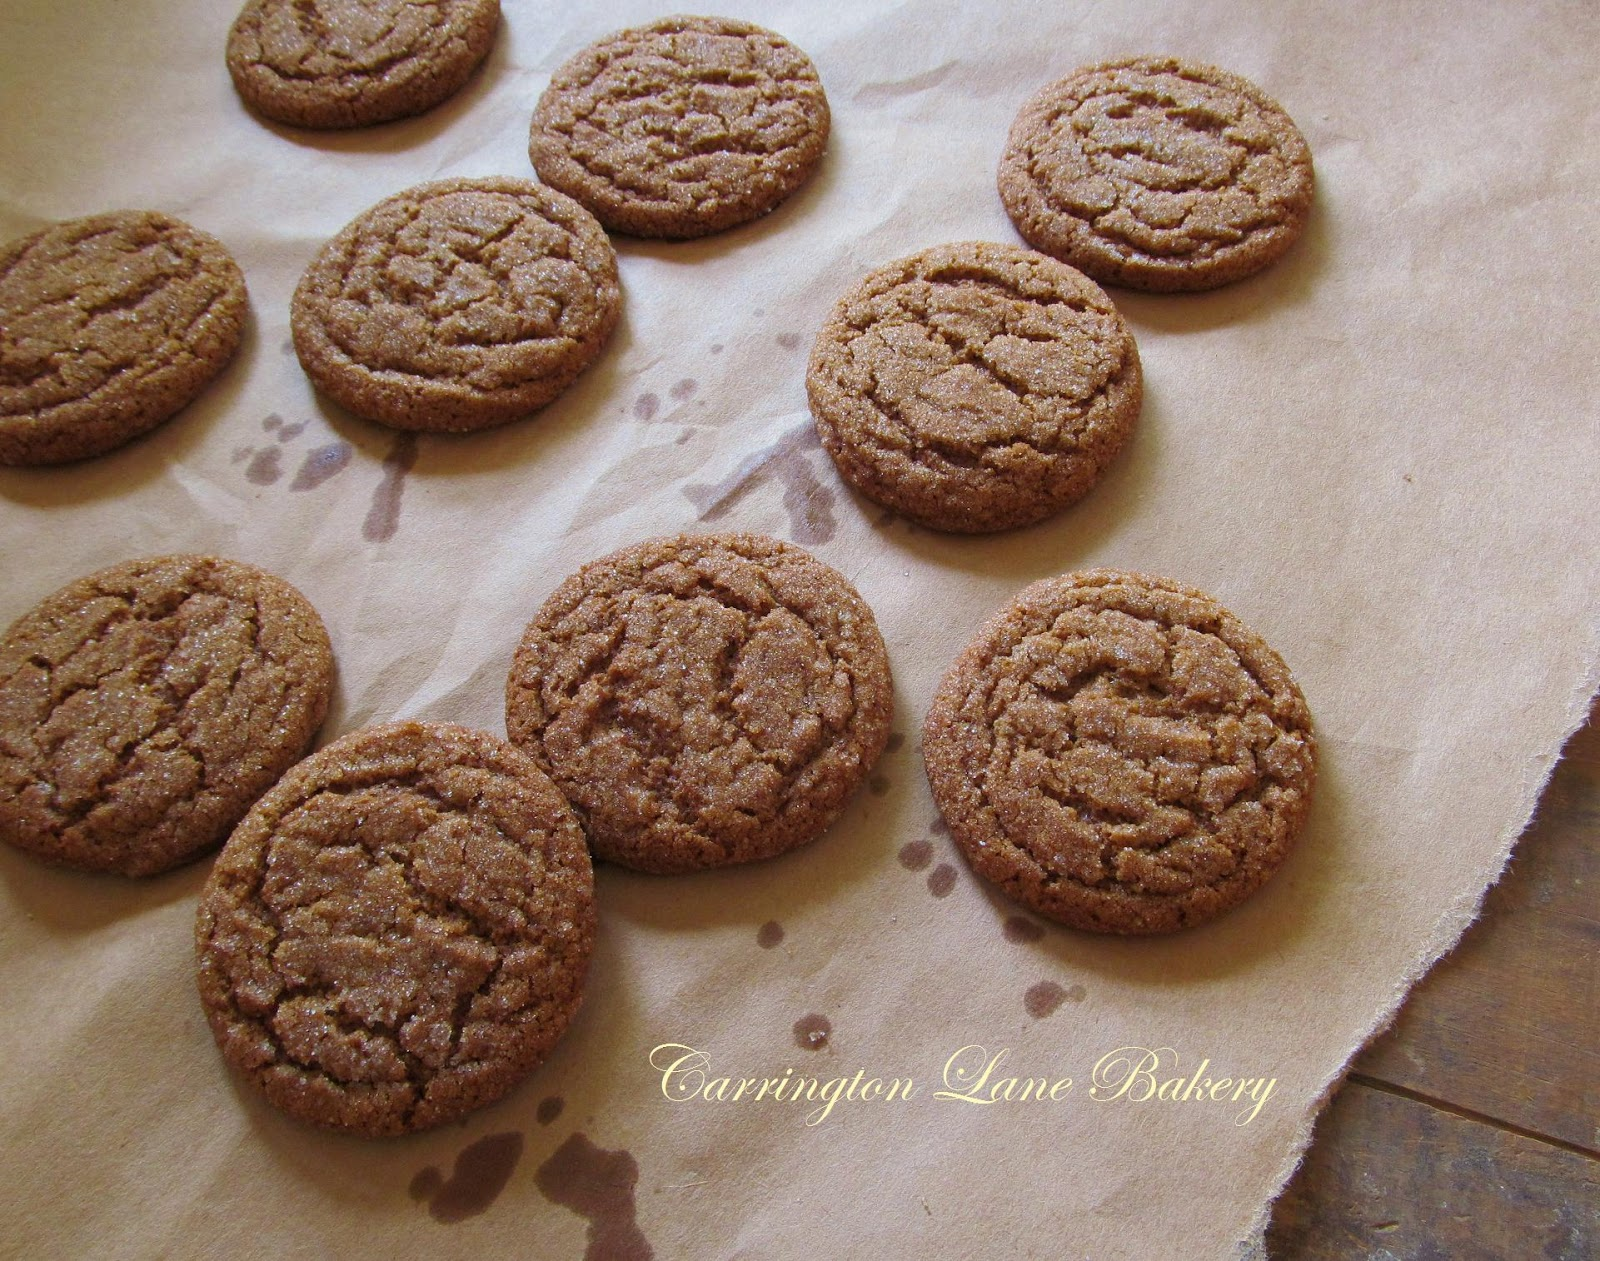 Carrington Lane Bakery: Bacon Fat Gingersnaps